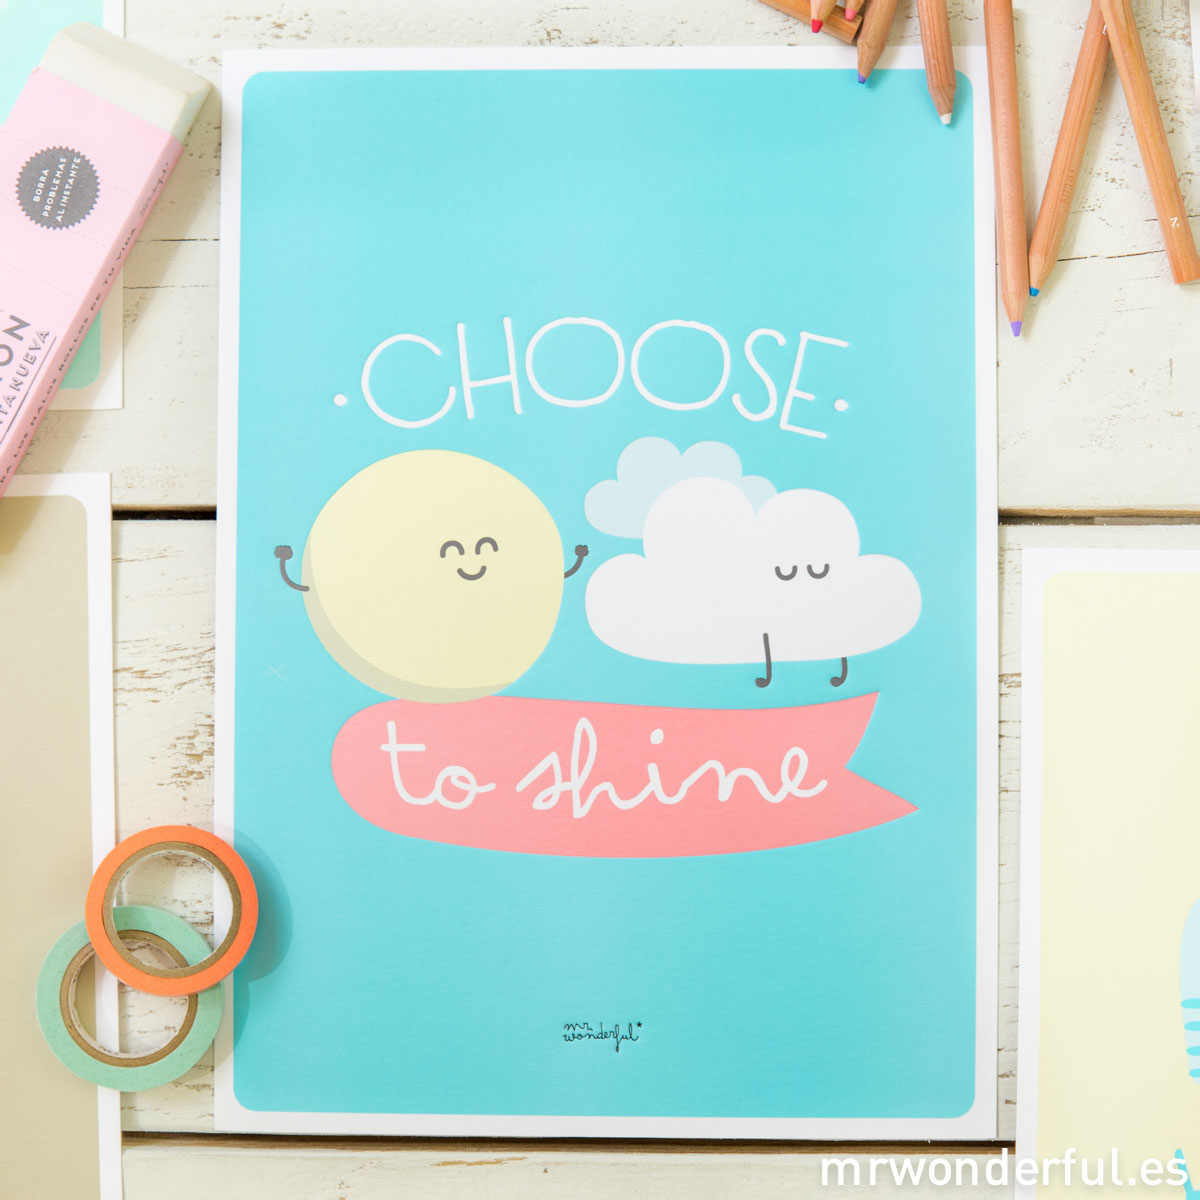 mrwonderful_LAM-SUMMER-11_lamina-choose-shine-15